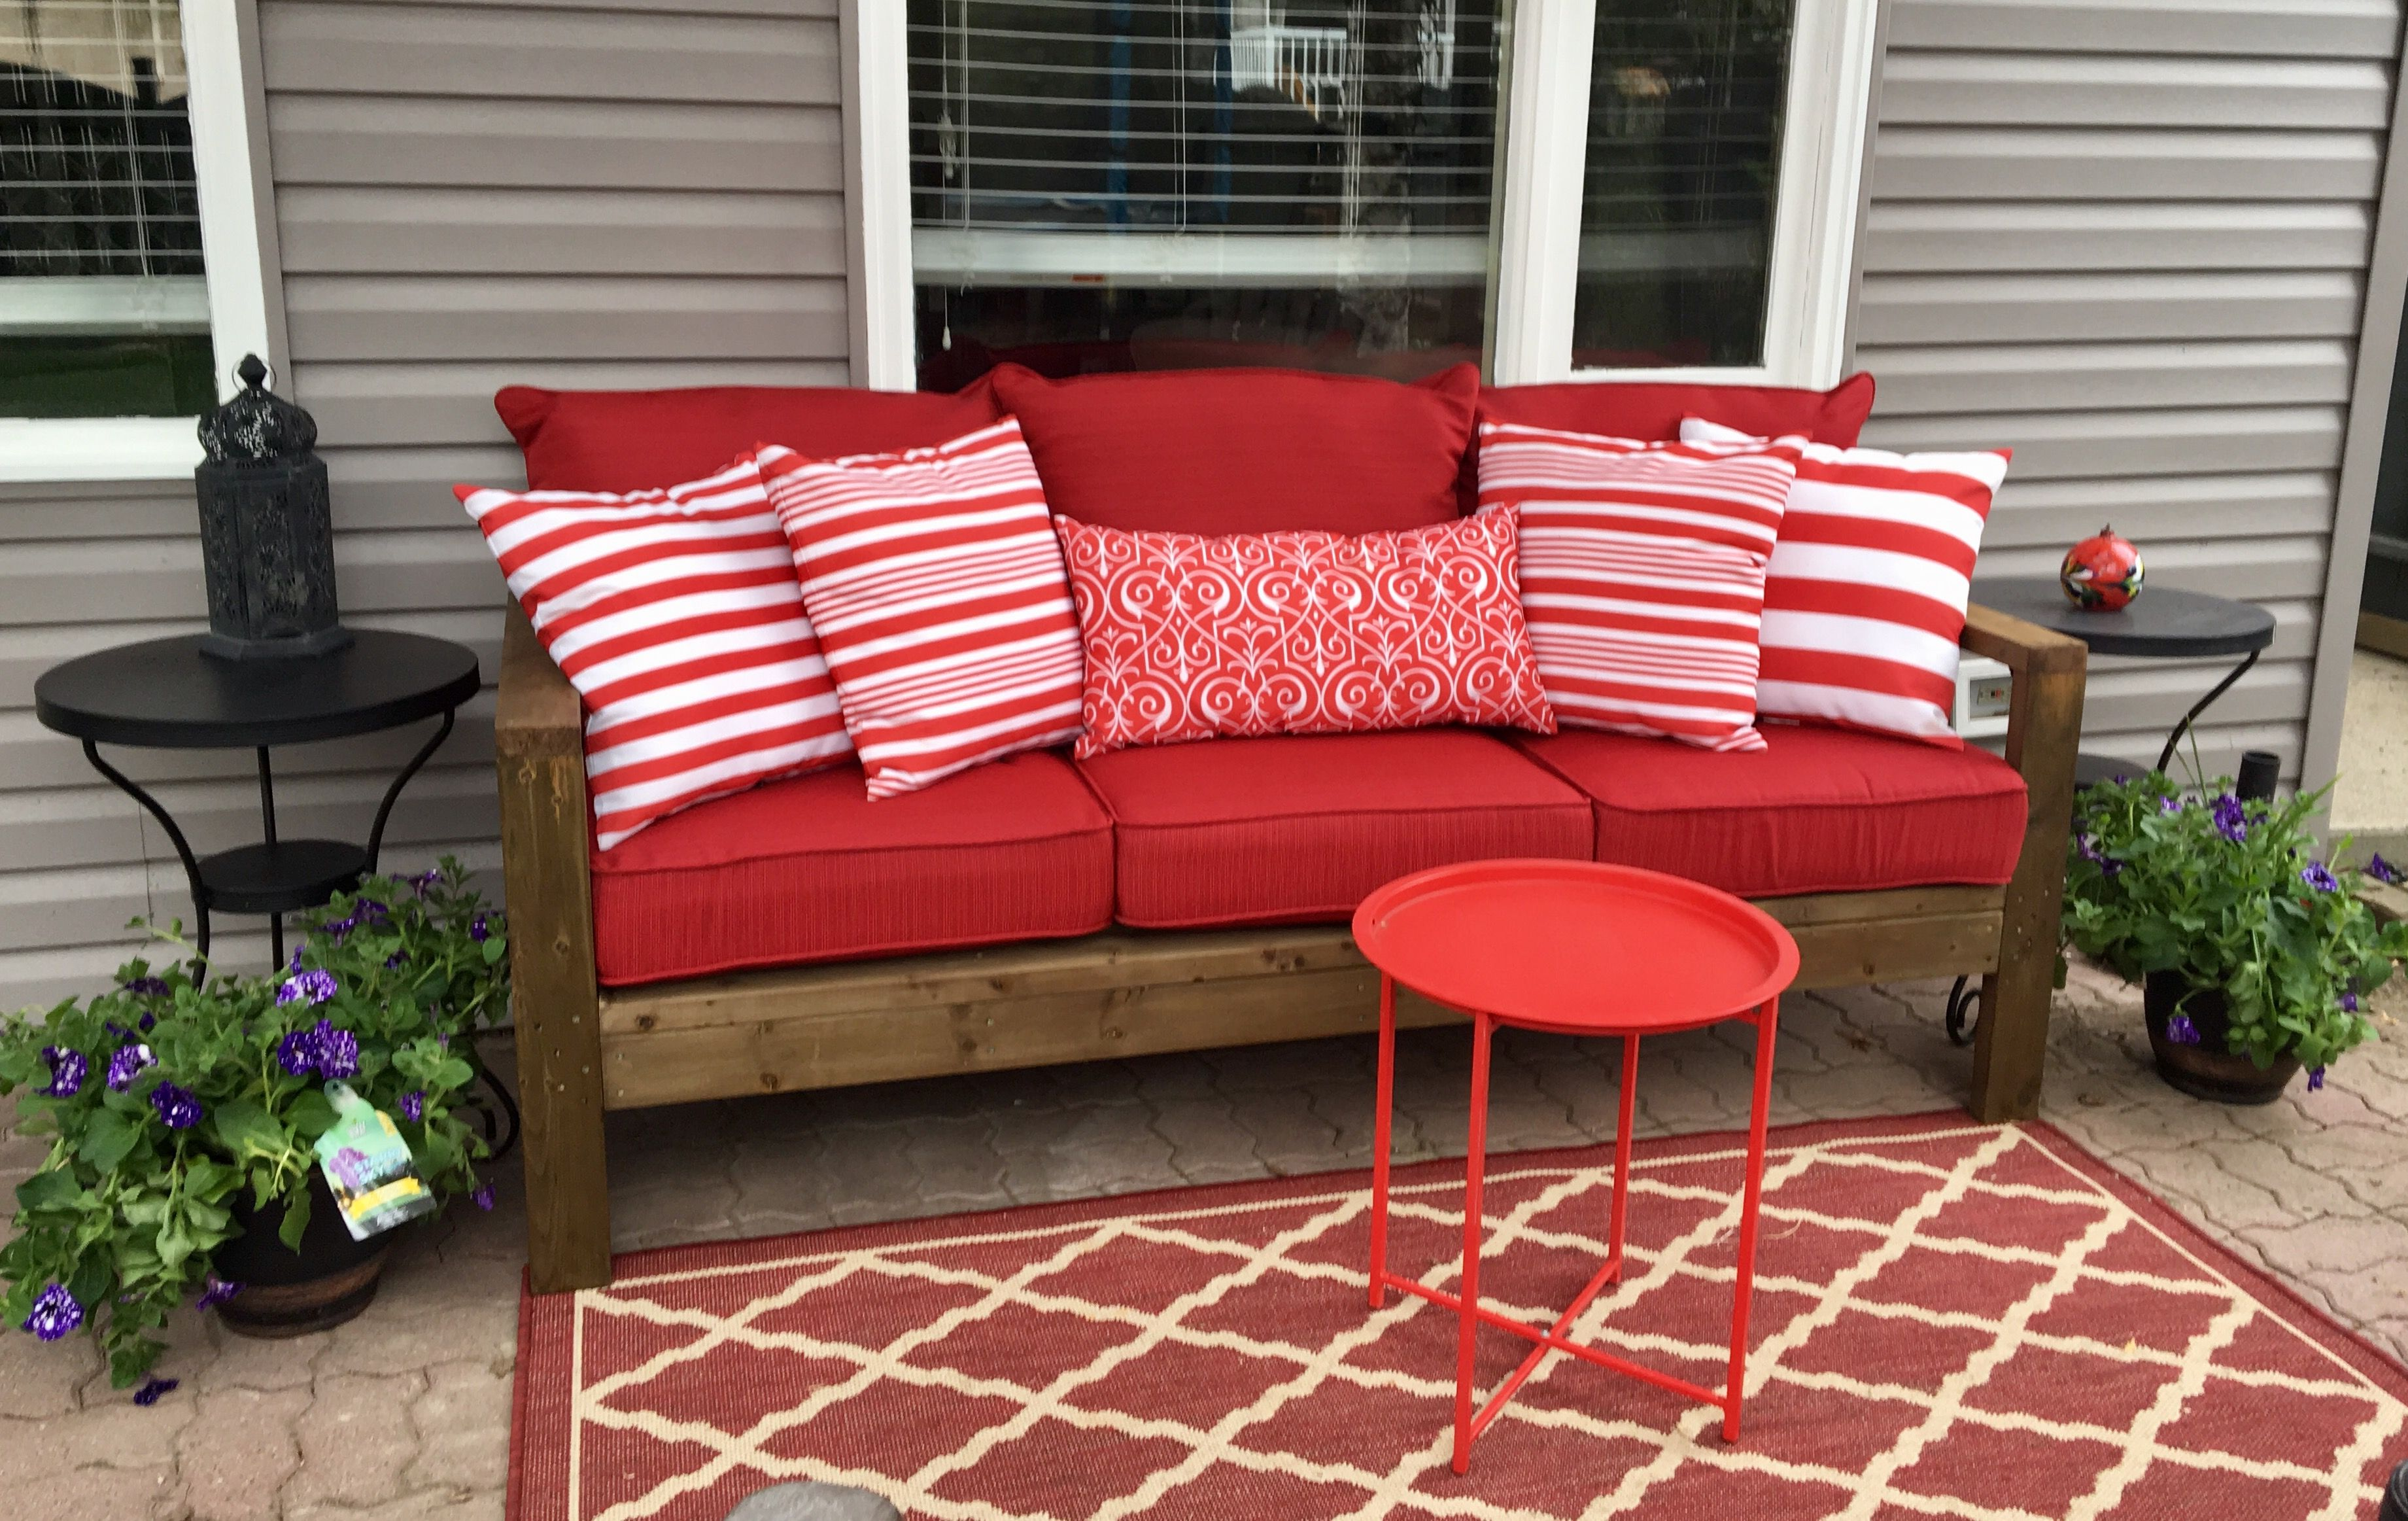 2x4 Outdoor Sofa With Red Cushions Ana White Anna S Outdoor Sofa